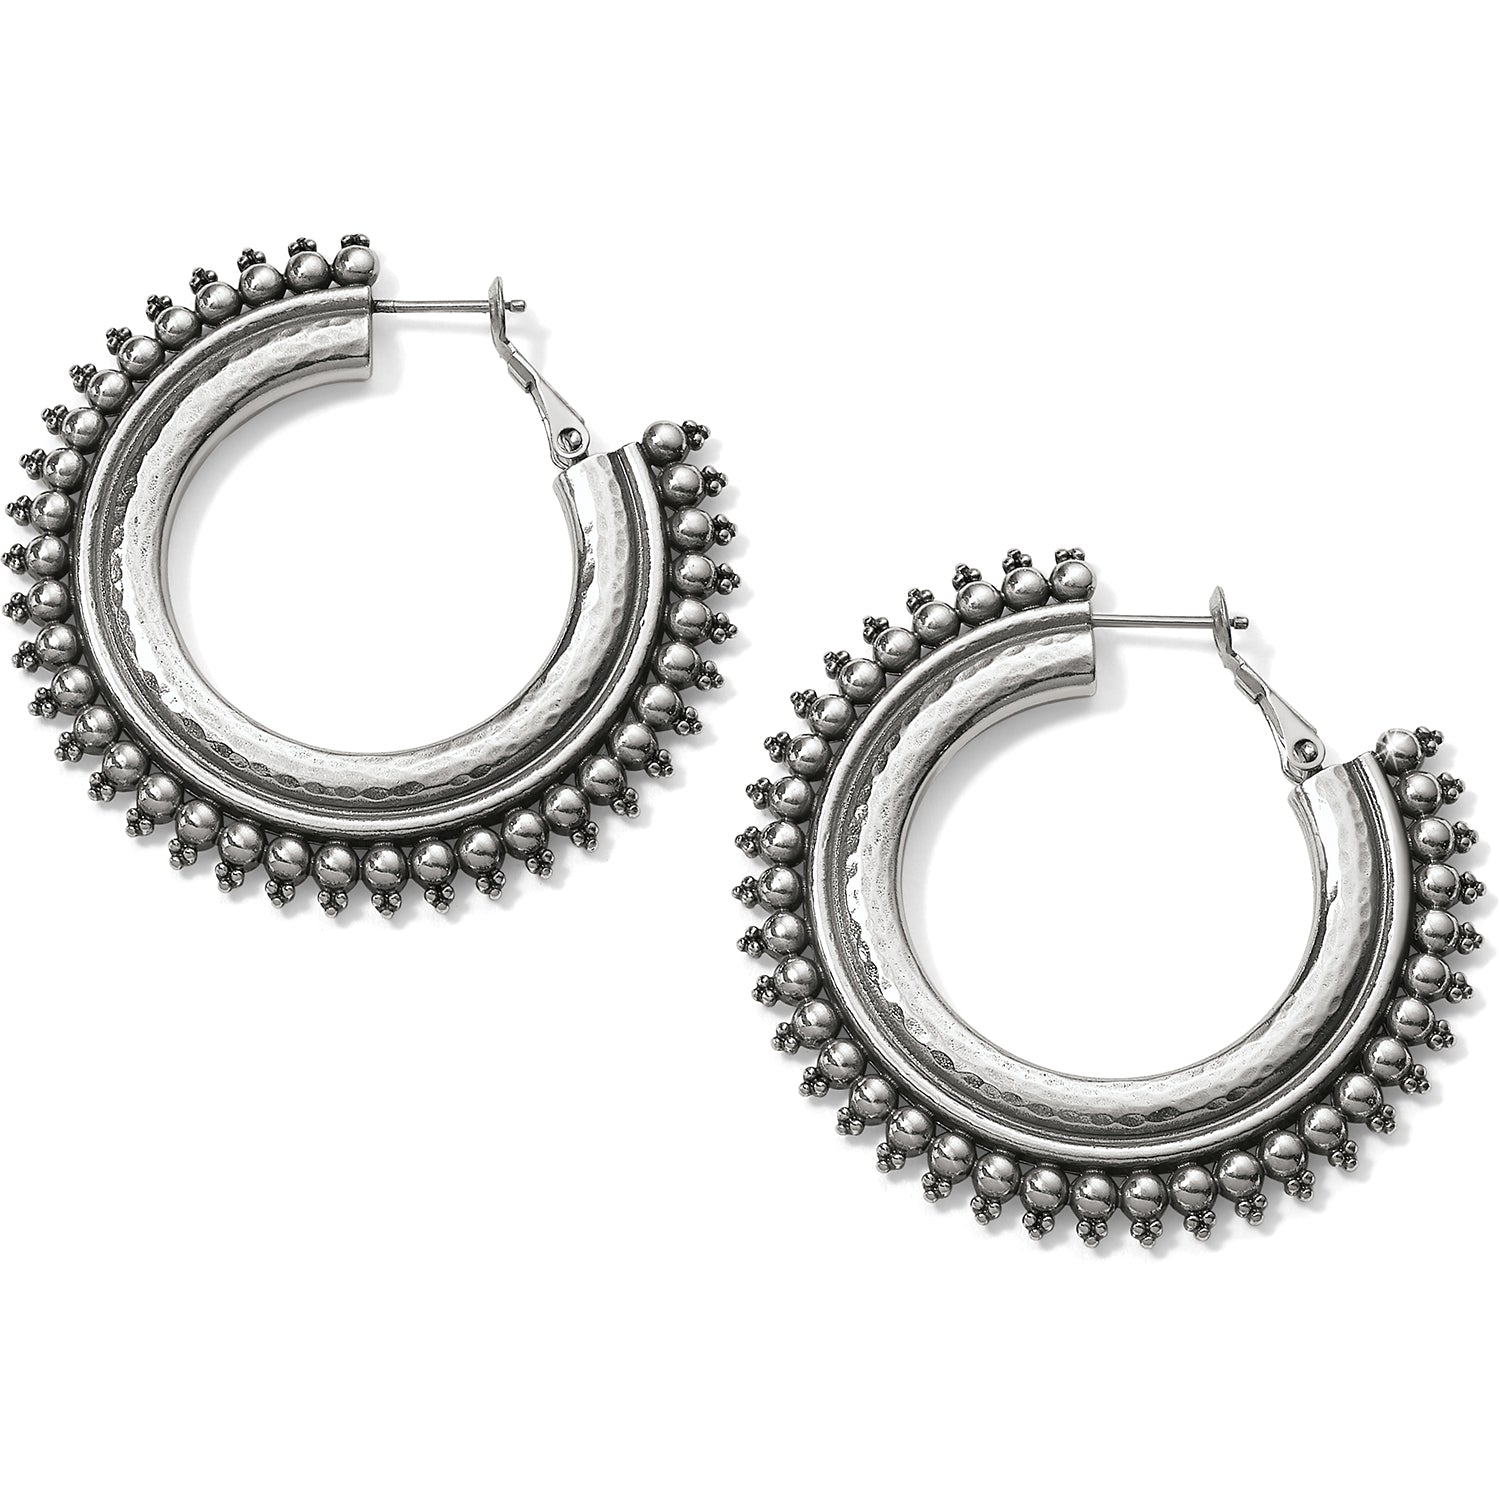 Brighton Jewelry Telluride Hoop Earrings. At once elegantly sporty and lively, this jewelry collection offers two old-world handcrafting techniques--hammering and granulation. These statement-making bold hoops lend an instant Boho vibe to your look.